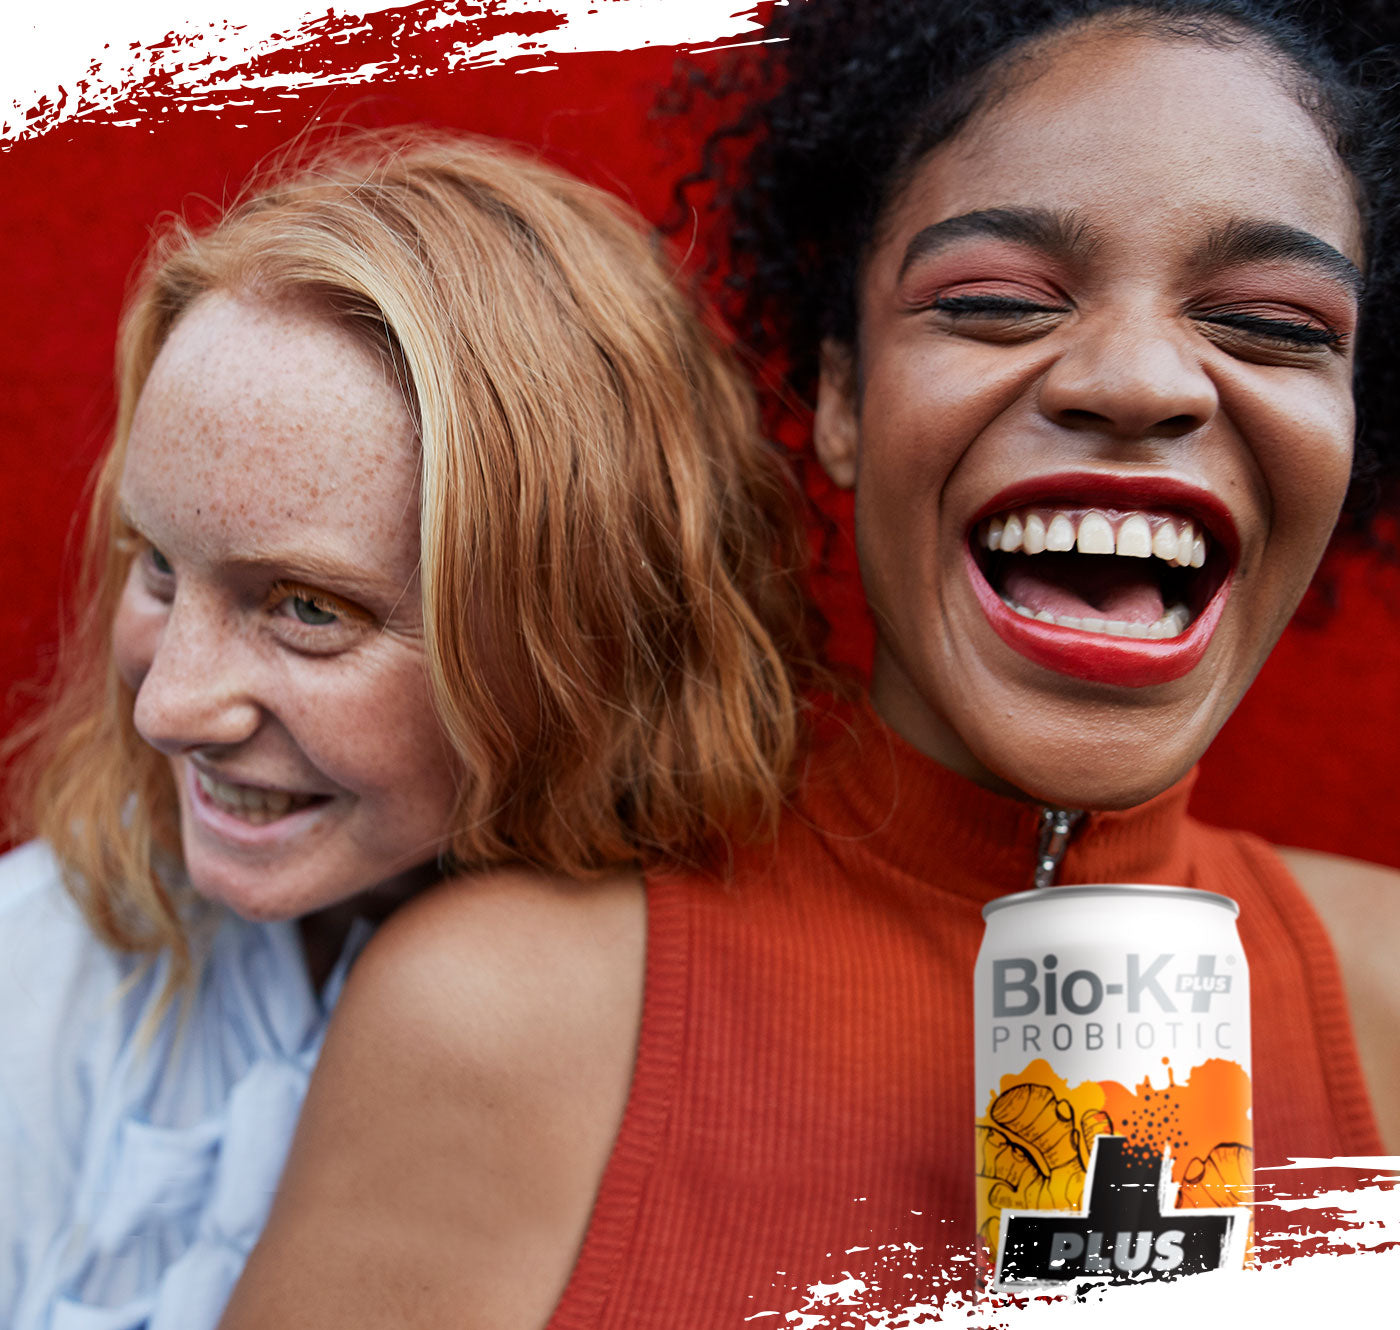 Photo of two women smiling and enjoying their iced tea